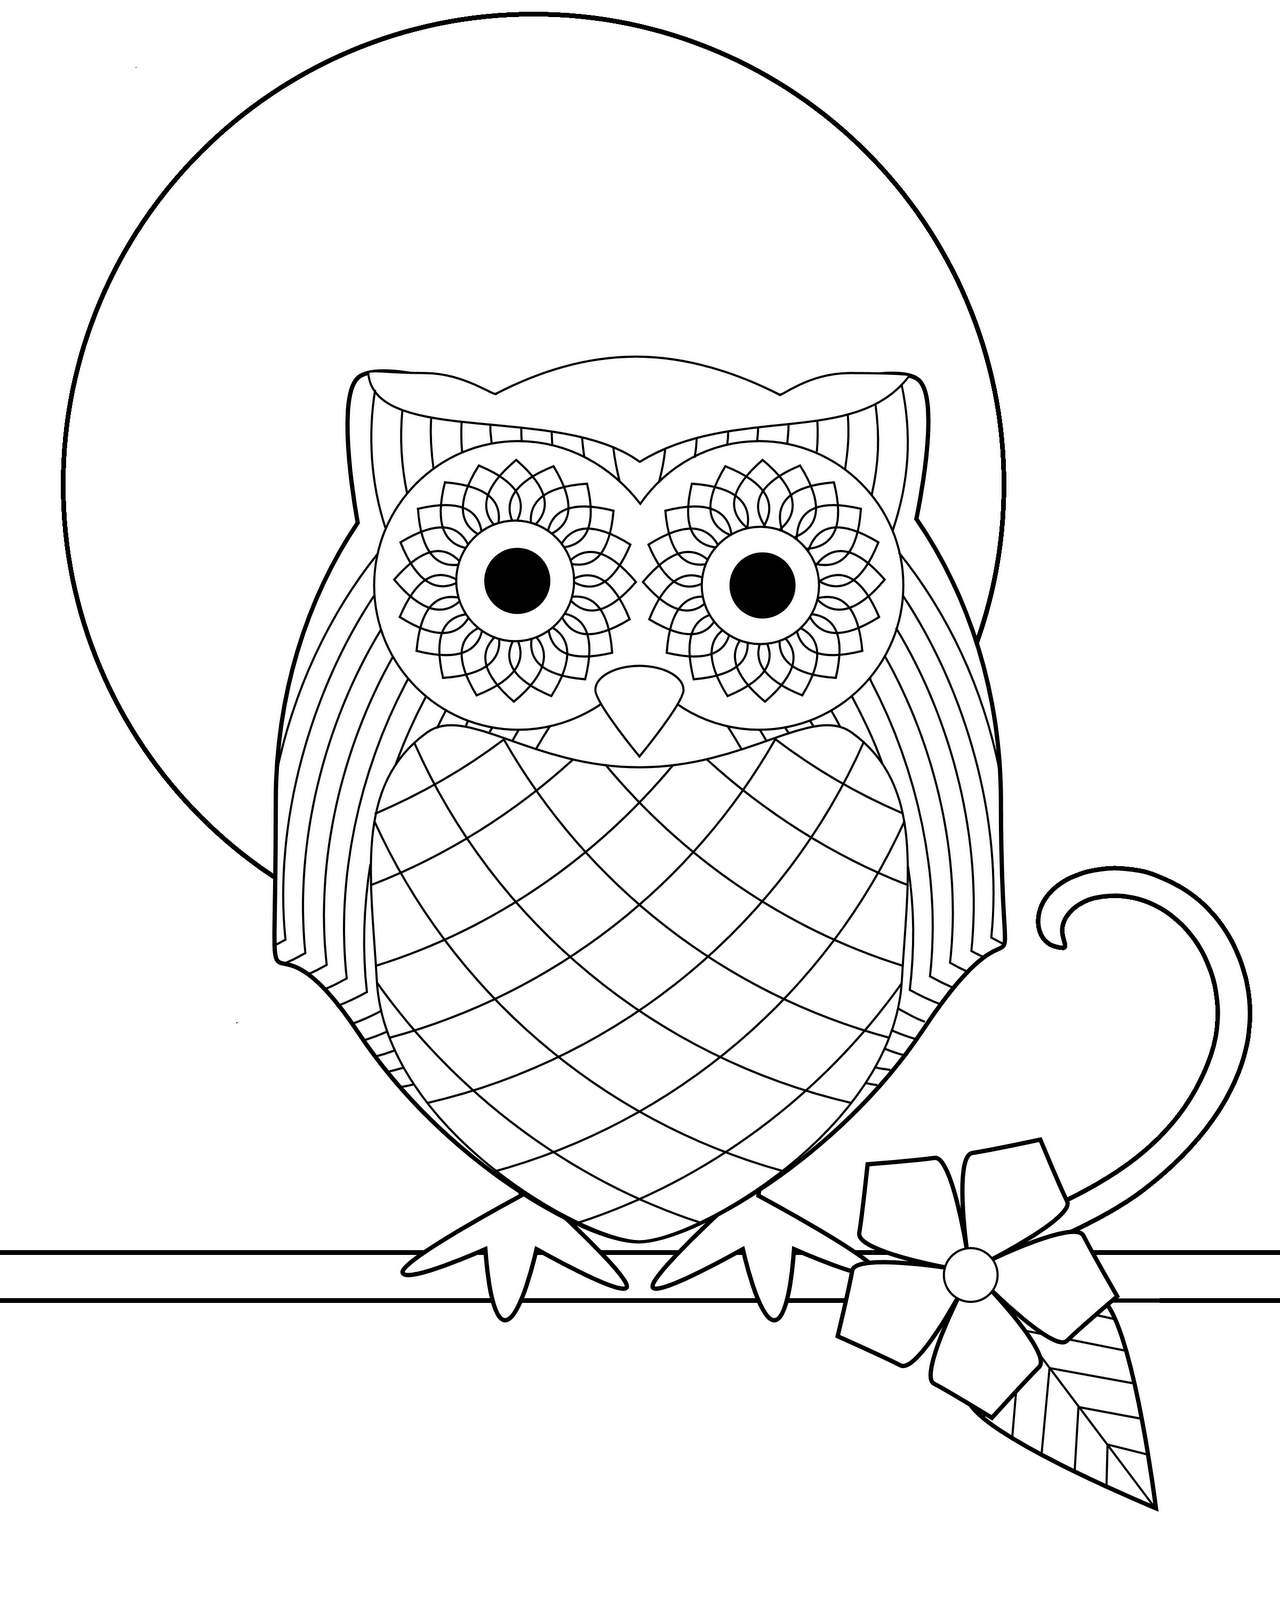 4 Images of Printable Owl Coloring Page